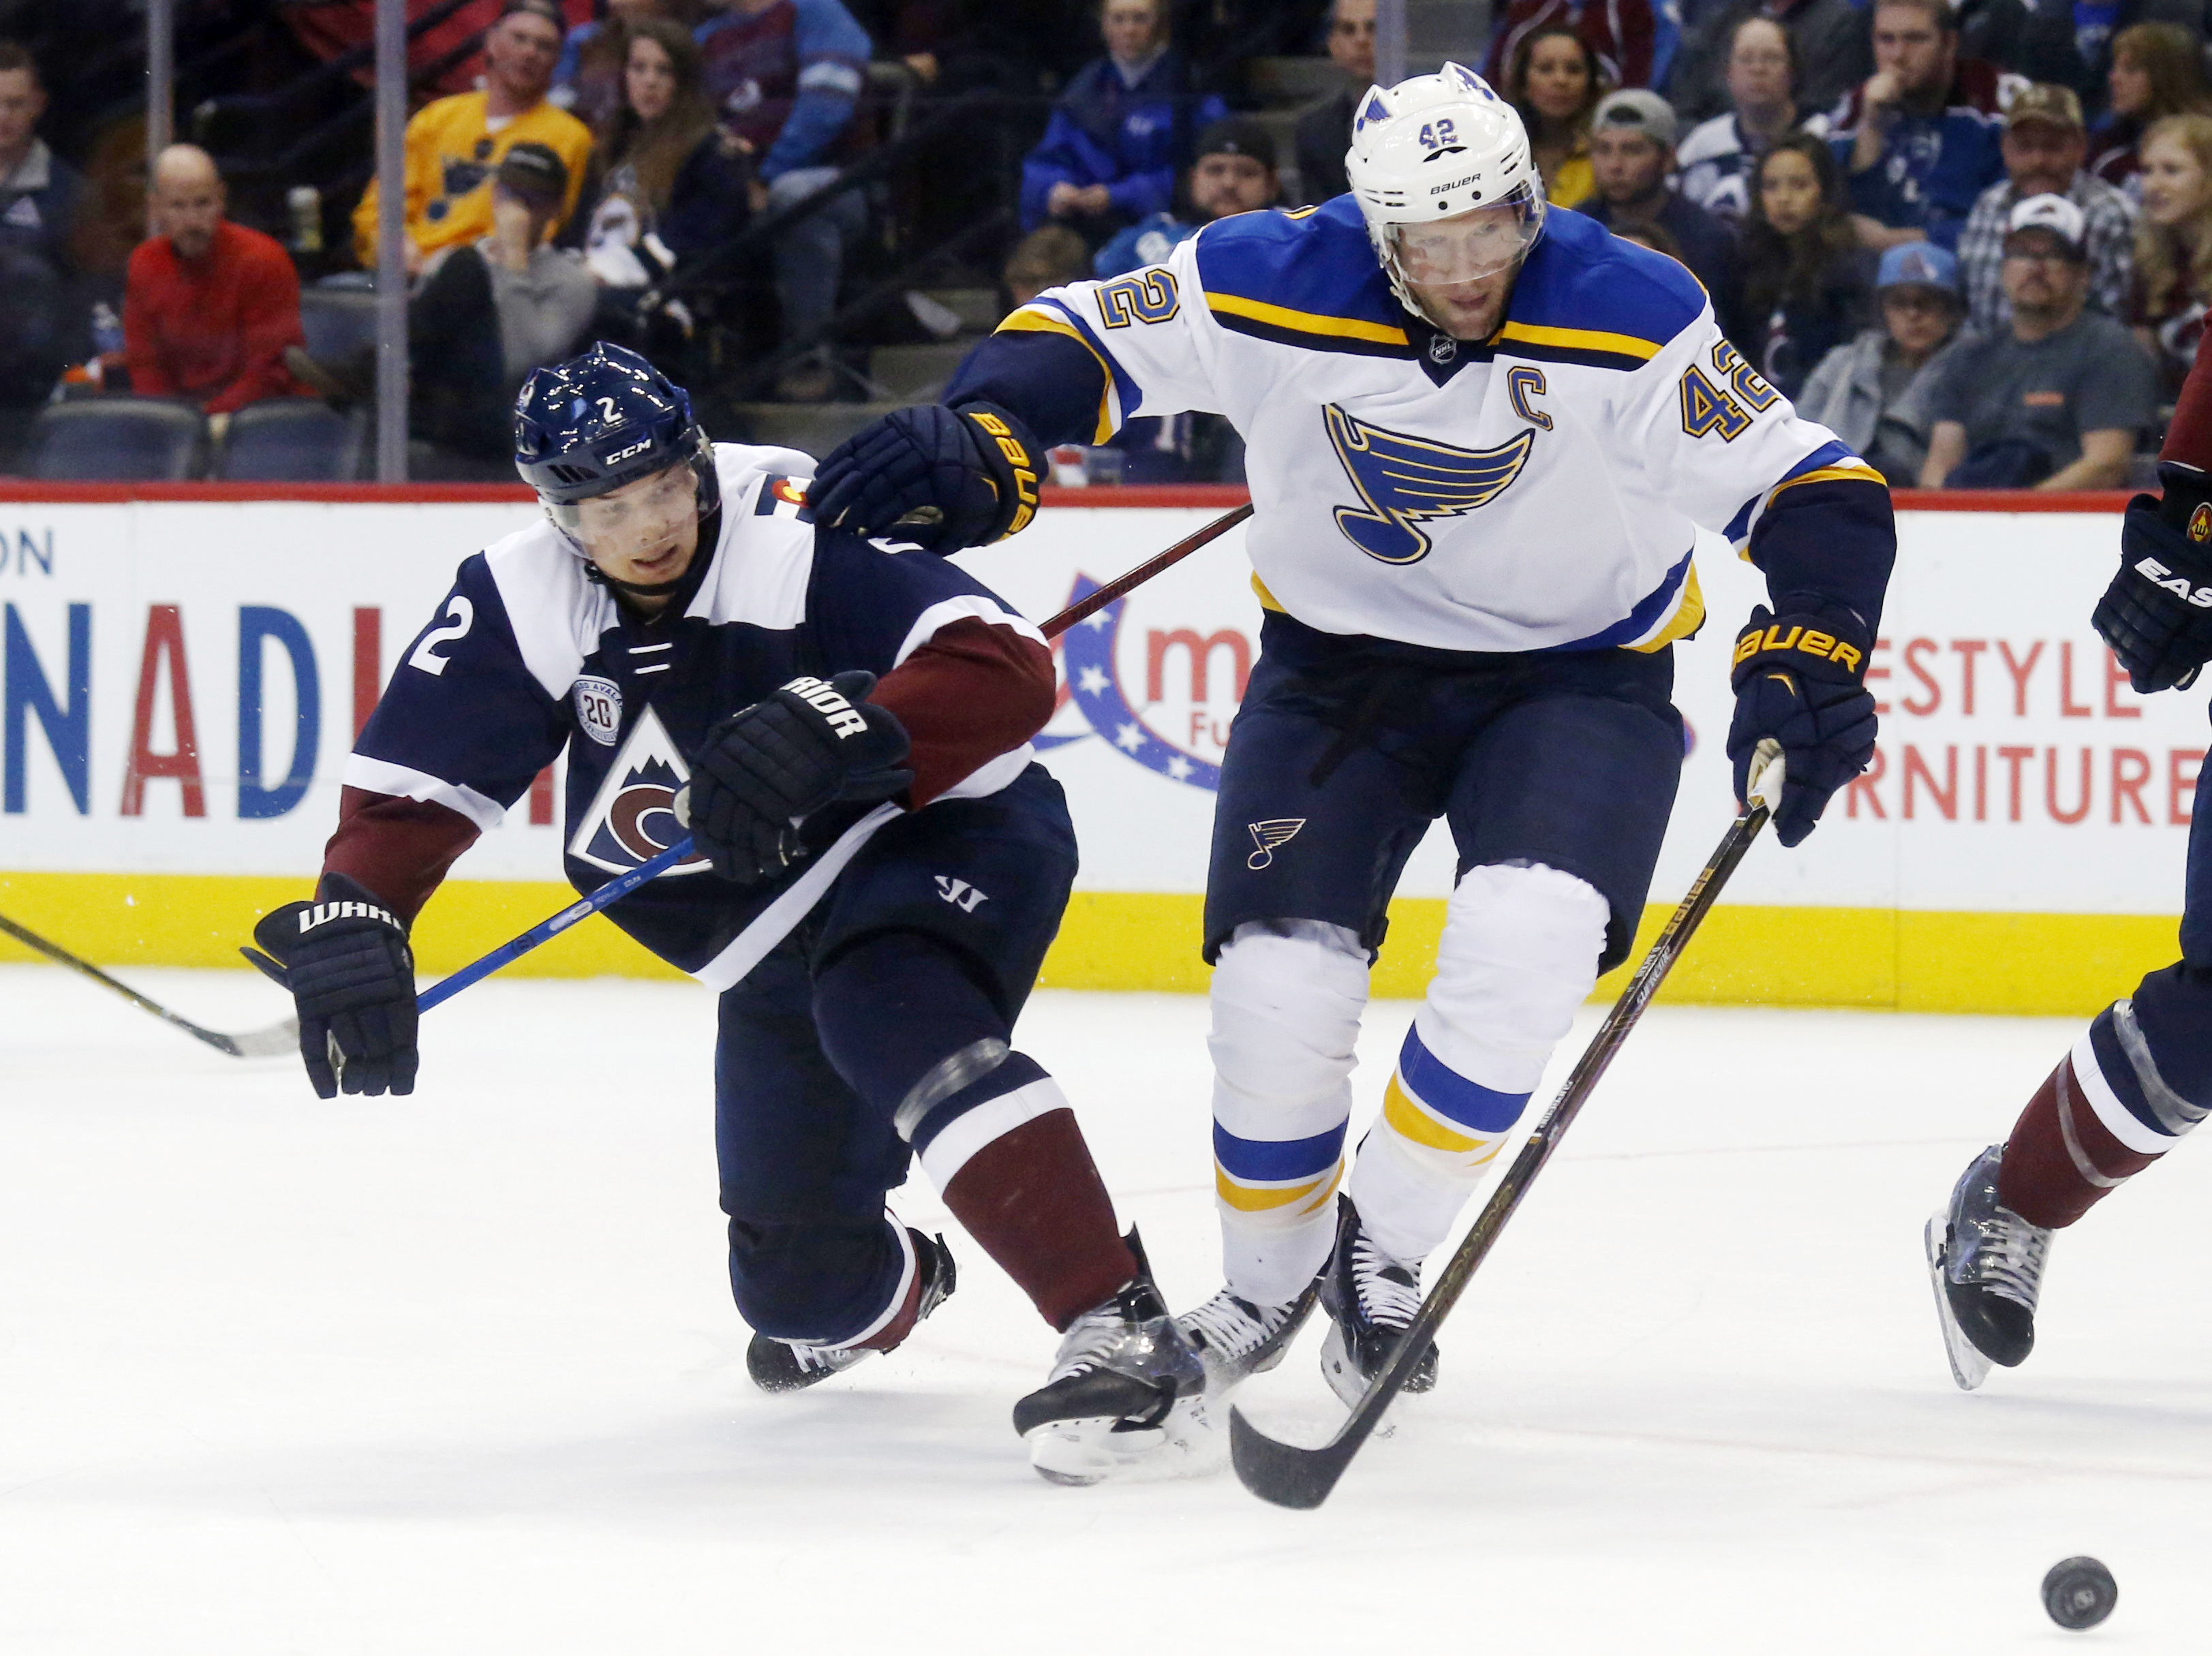 St. Louis Blues center David Backes, right, fights for control of the puck with Colorado Avalanche defenseman Nick Holden in the third period of an NHL hockey game Sunday, April 3, 2016, in Denver. St. Louis won 5-1. (AP Photo/David Zalubowski)